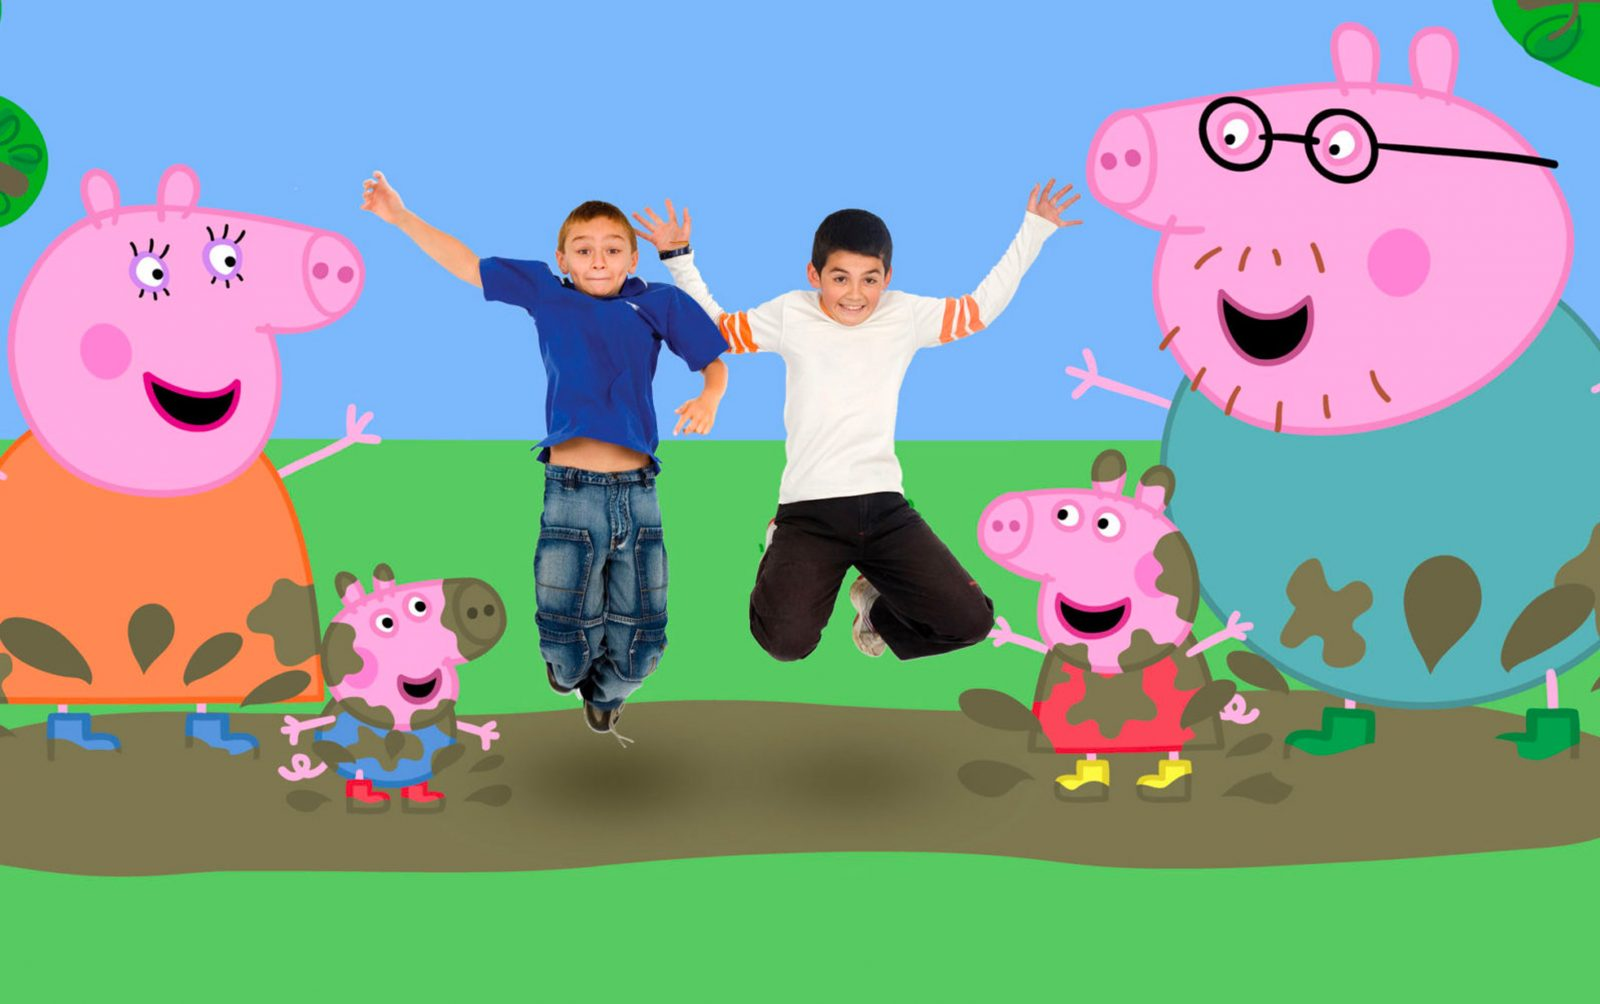 Peppa Pig at Paulton's Park, designed and created by Katapult